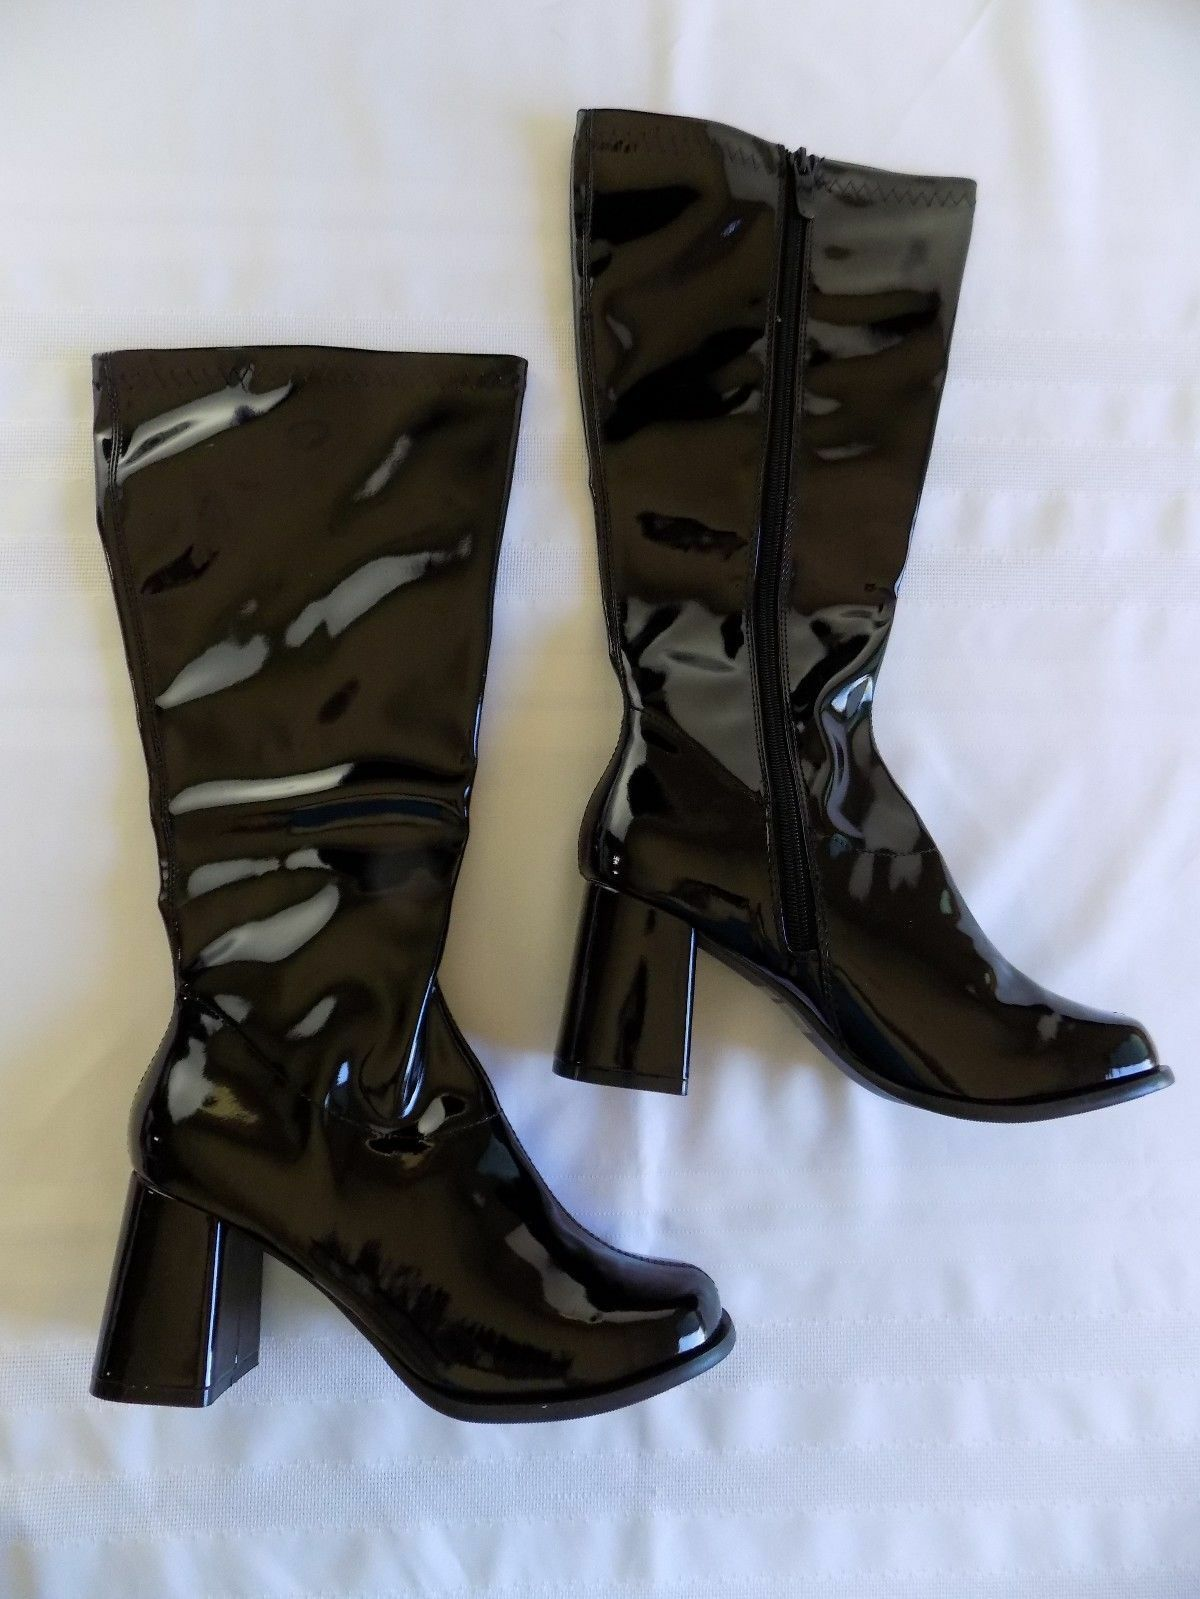 Black Patent Knee High High High Boots 3  Chunky Heel Inner Zipper Ellie shoes Gogo 8M e19f7c